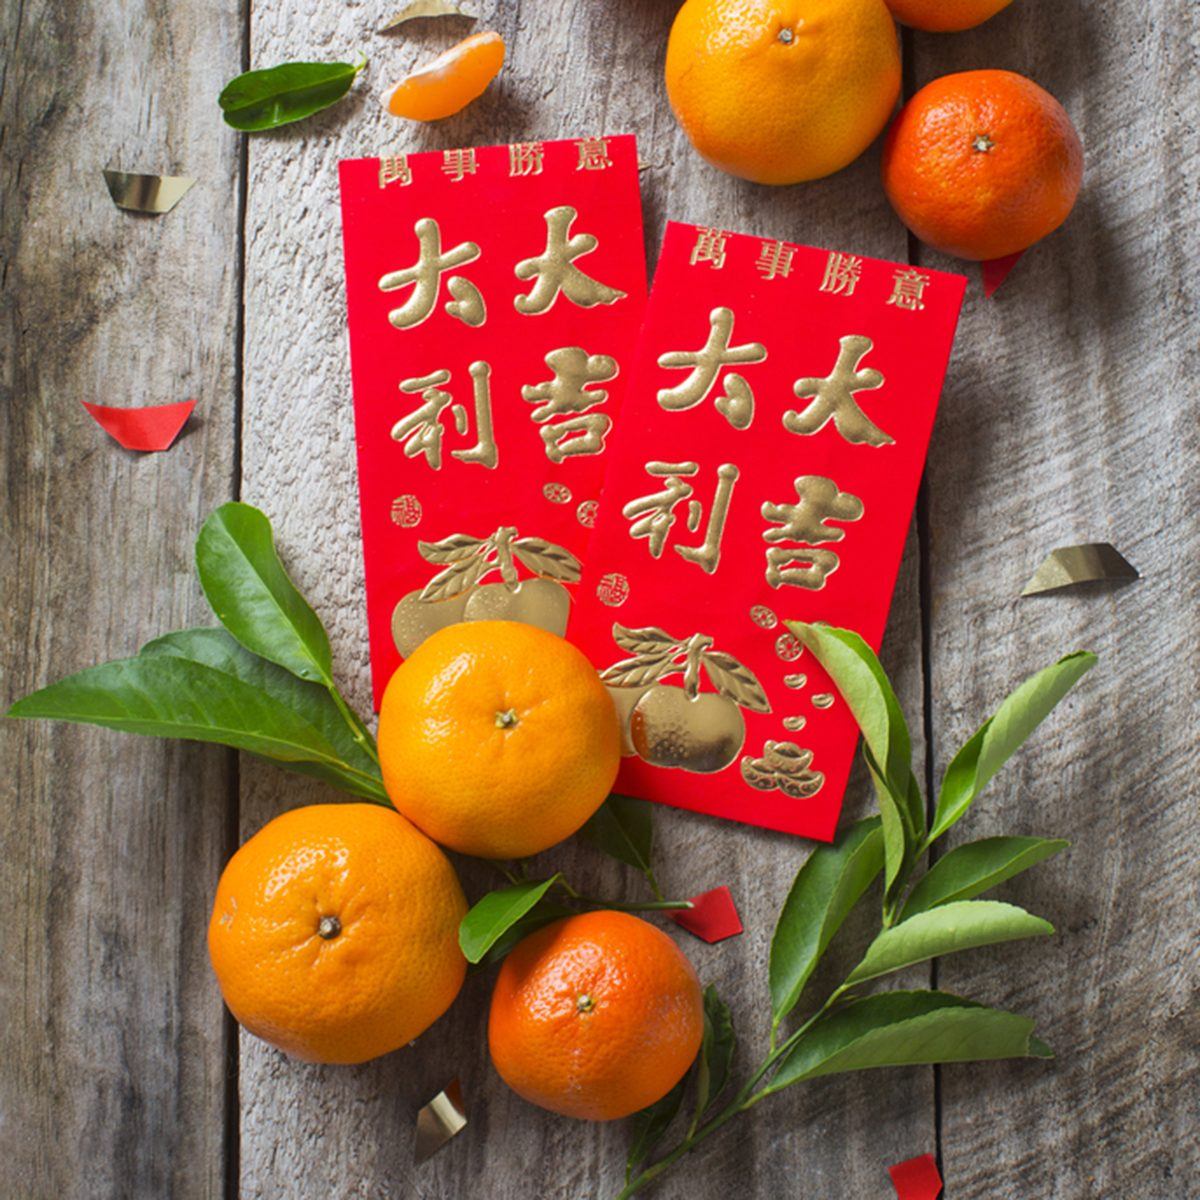 "Mandarin oranges and Chinese new year red packet with text ""Good luck and Great fortune"" and smaller text ""All the Best"" printed placed on rustic wooden background.; Shutterstock ID 361980683"